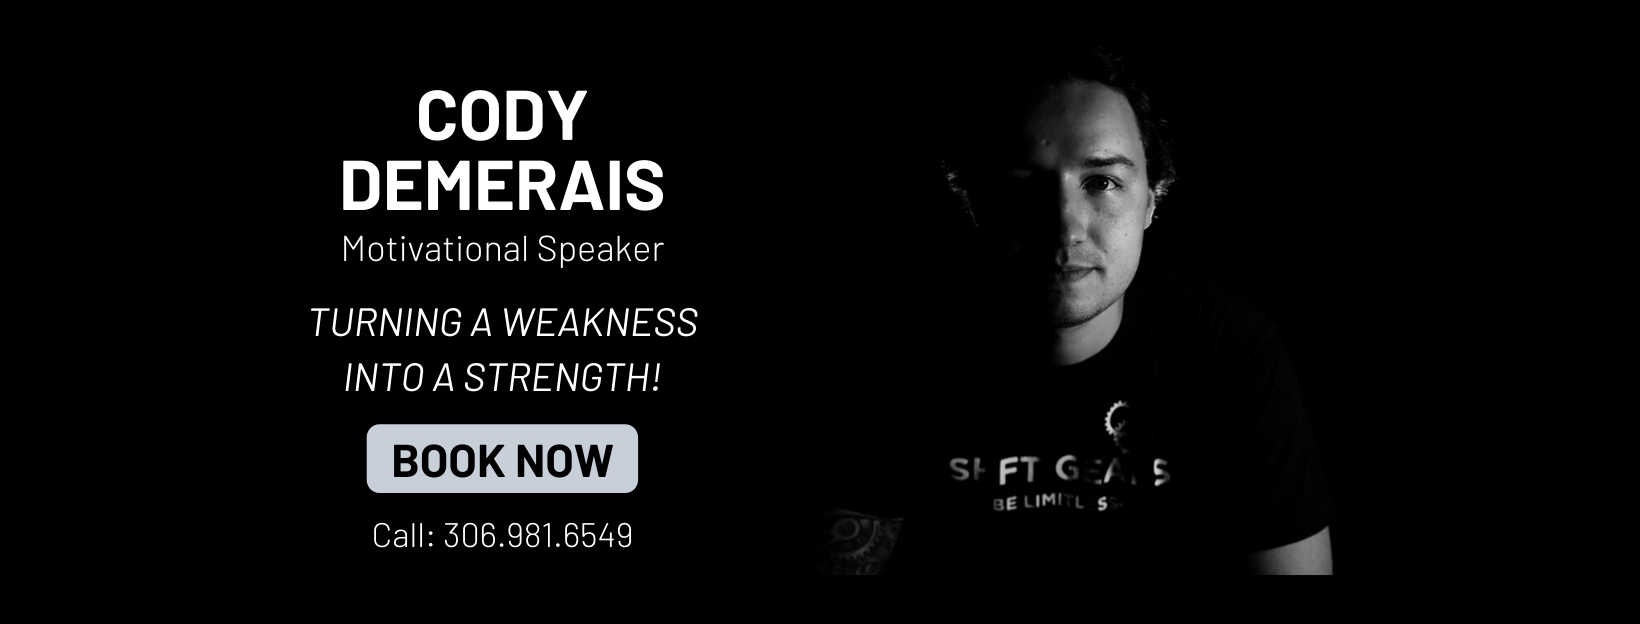 Cody Demerais - Facebook Cover